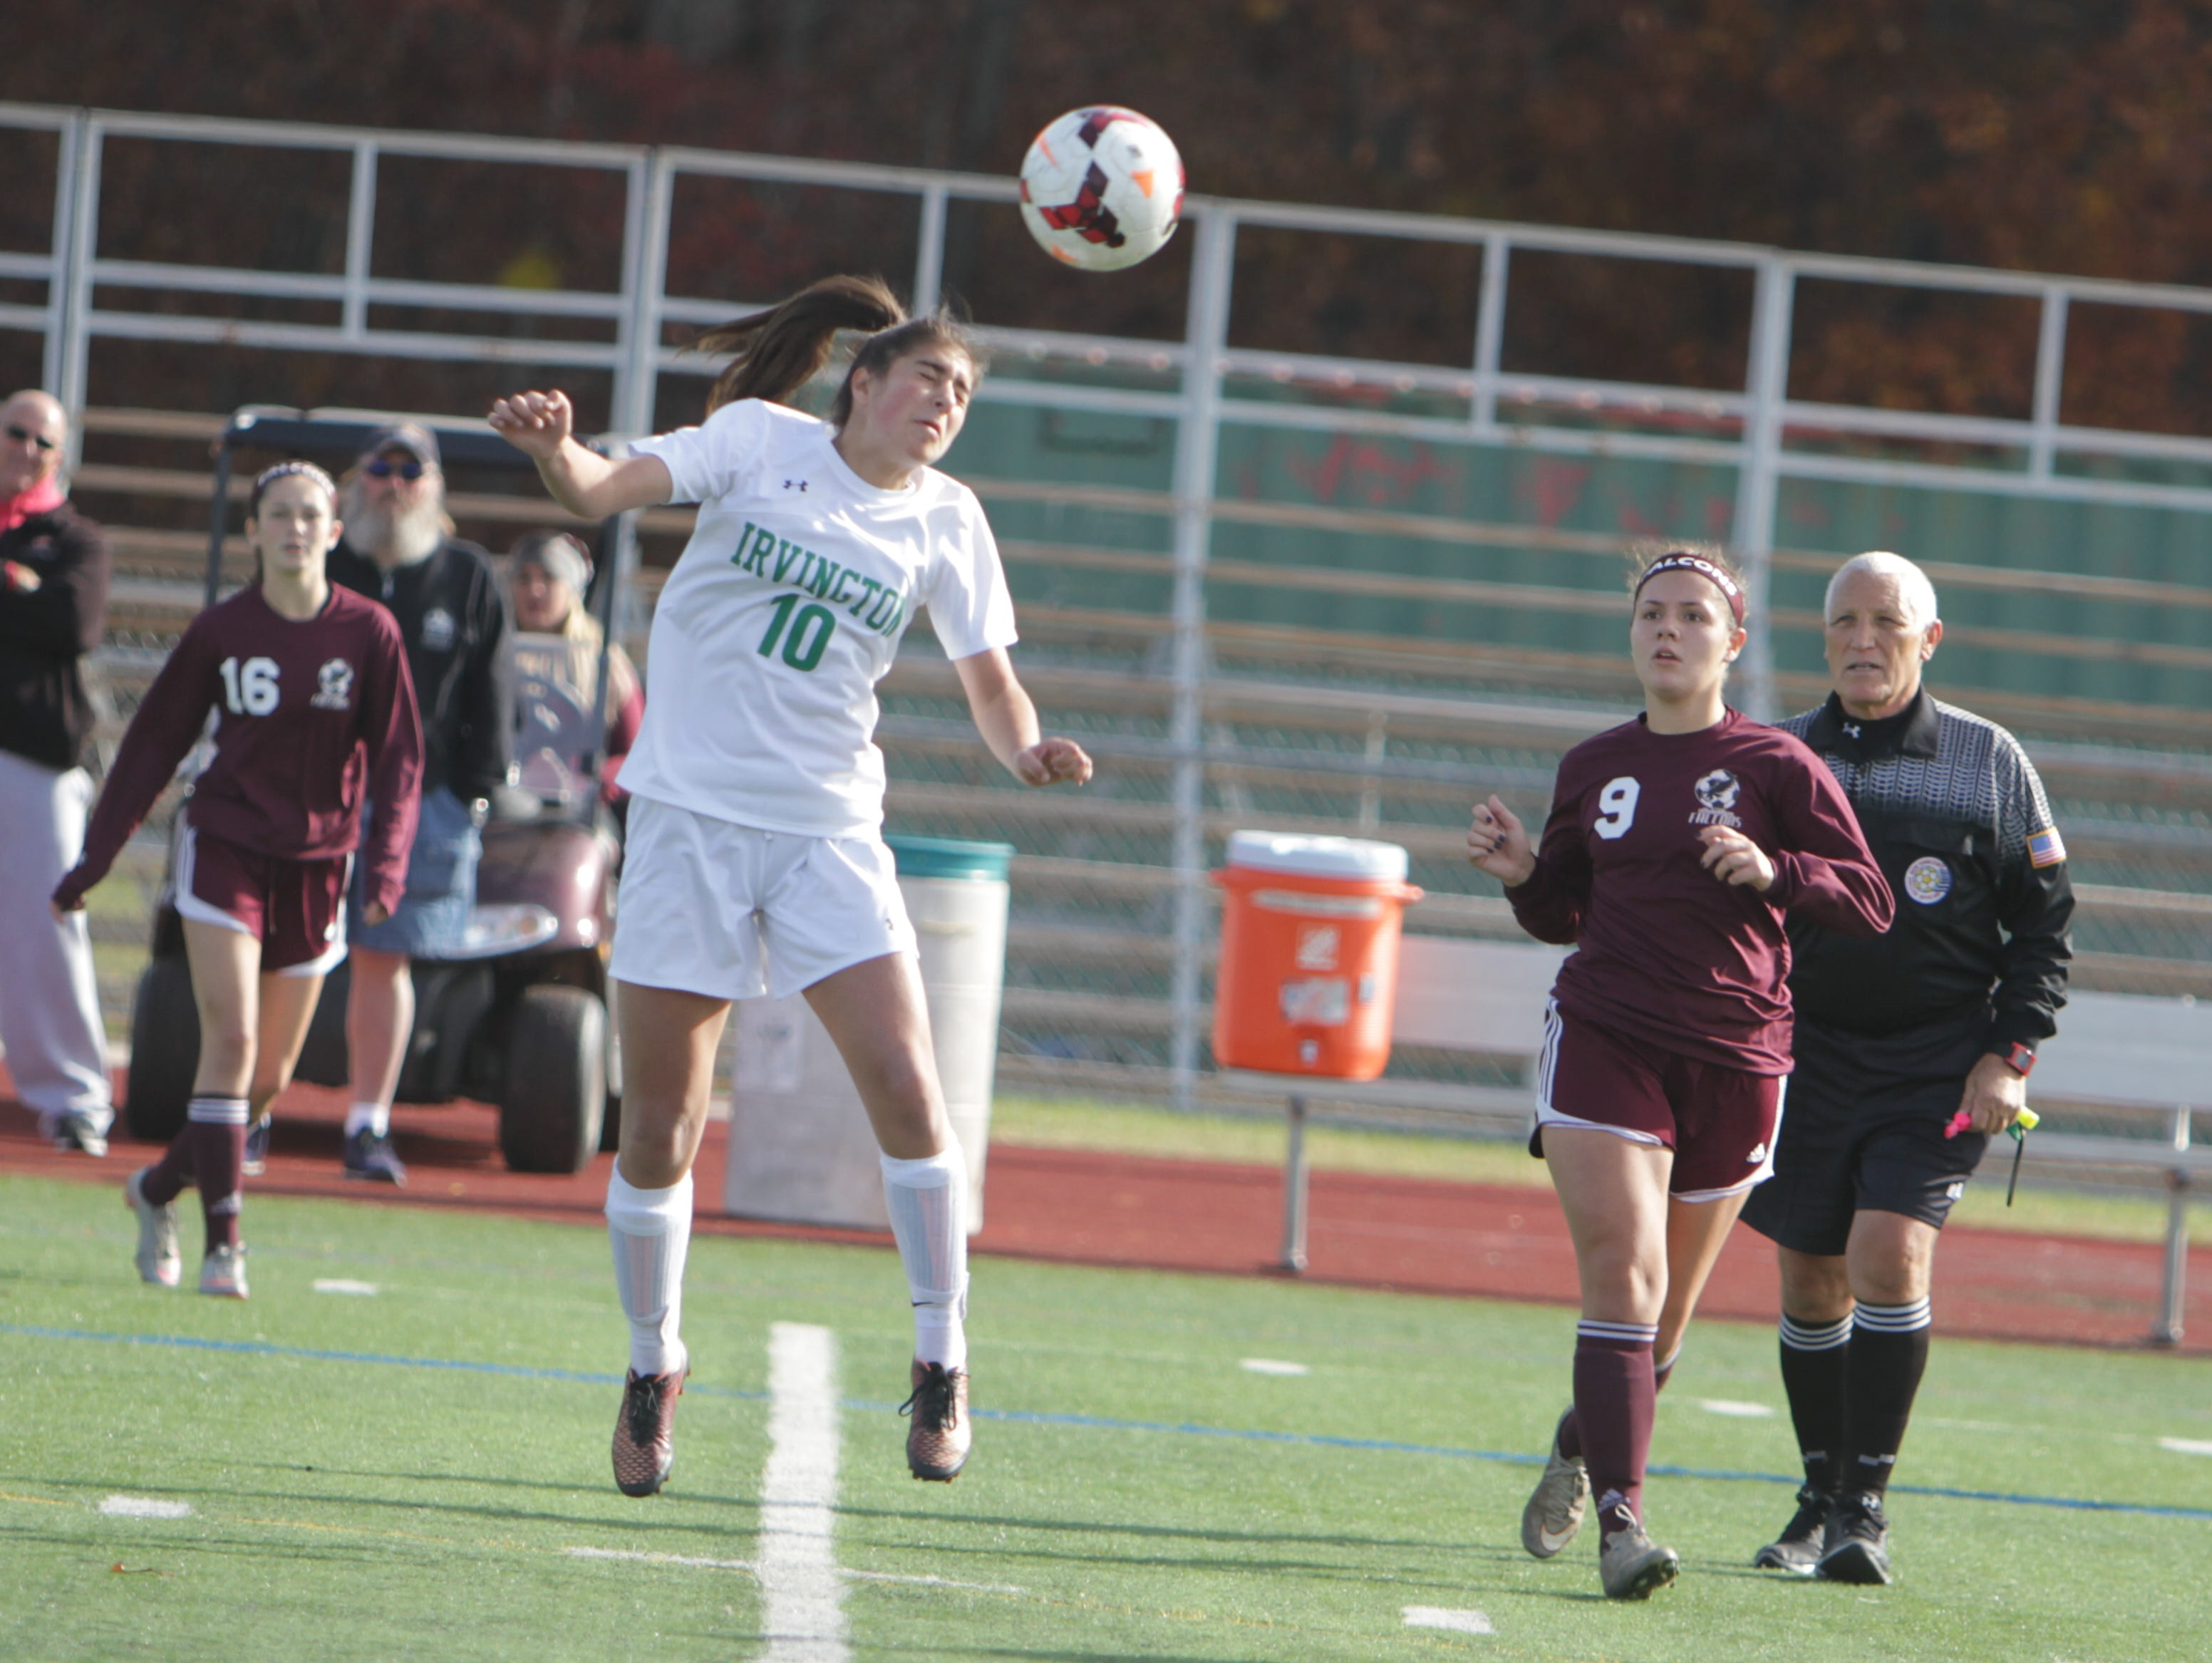 Albertus Magnus defeated Irvington 1-0 in the Section 1, Class B championship game at Arlington High School on Saturday, October 31st, 2015.